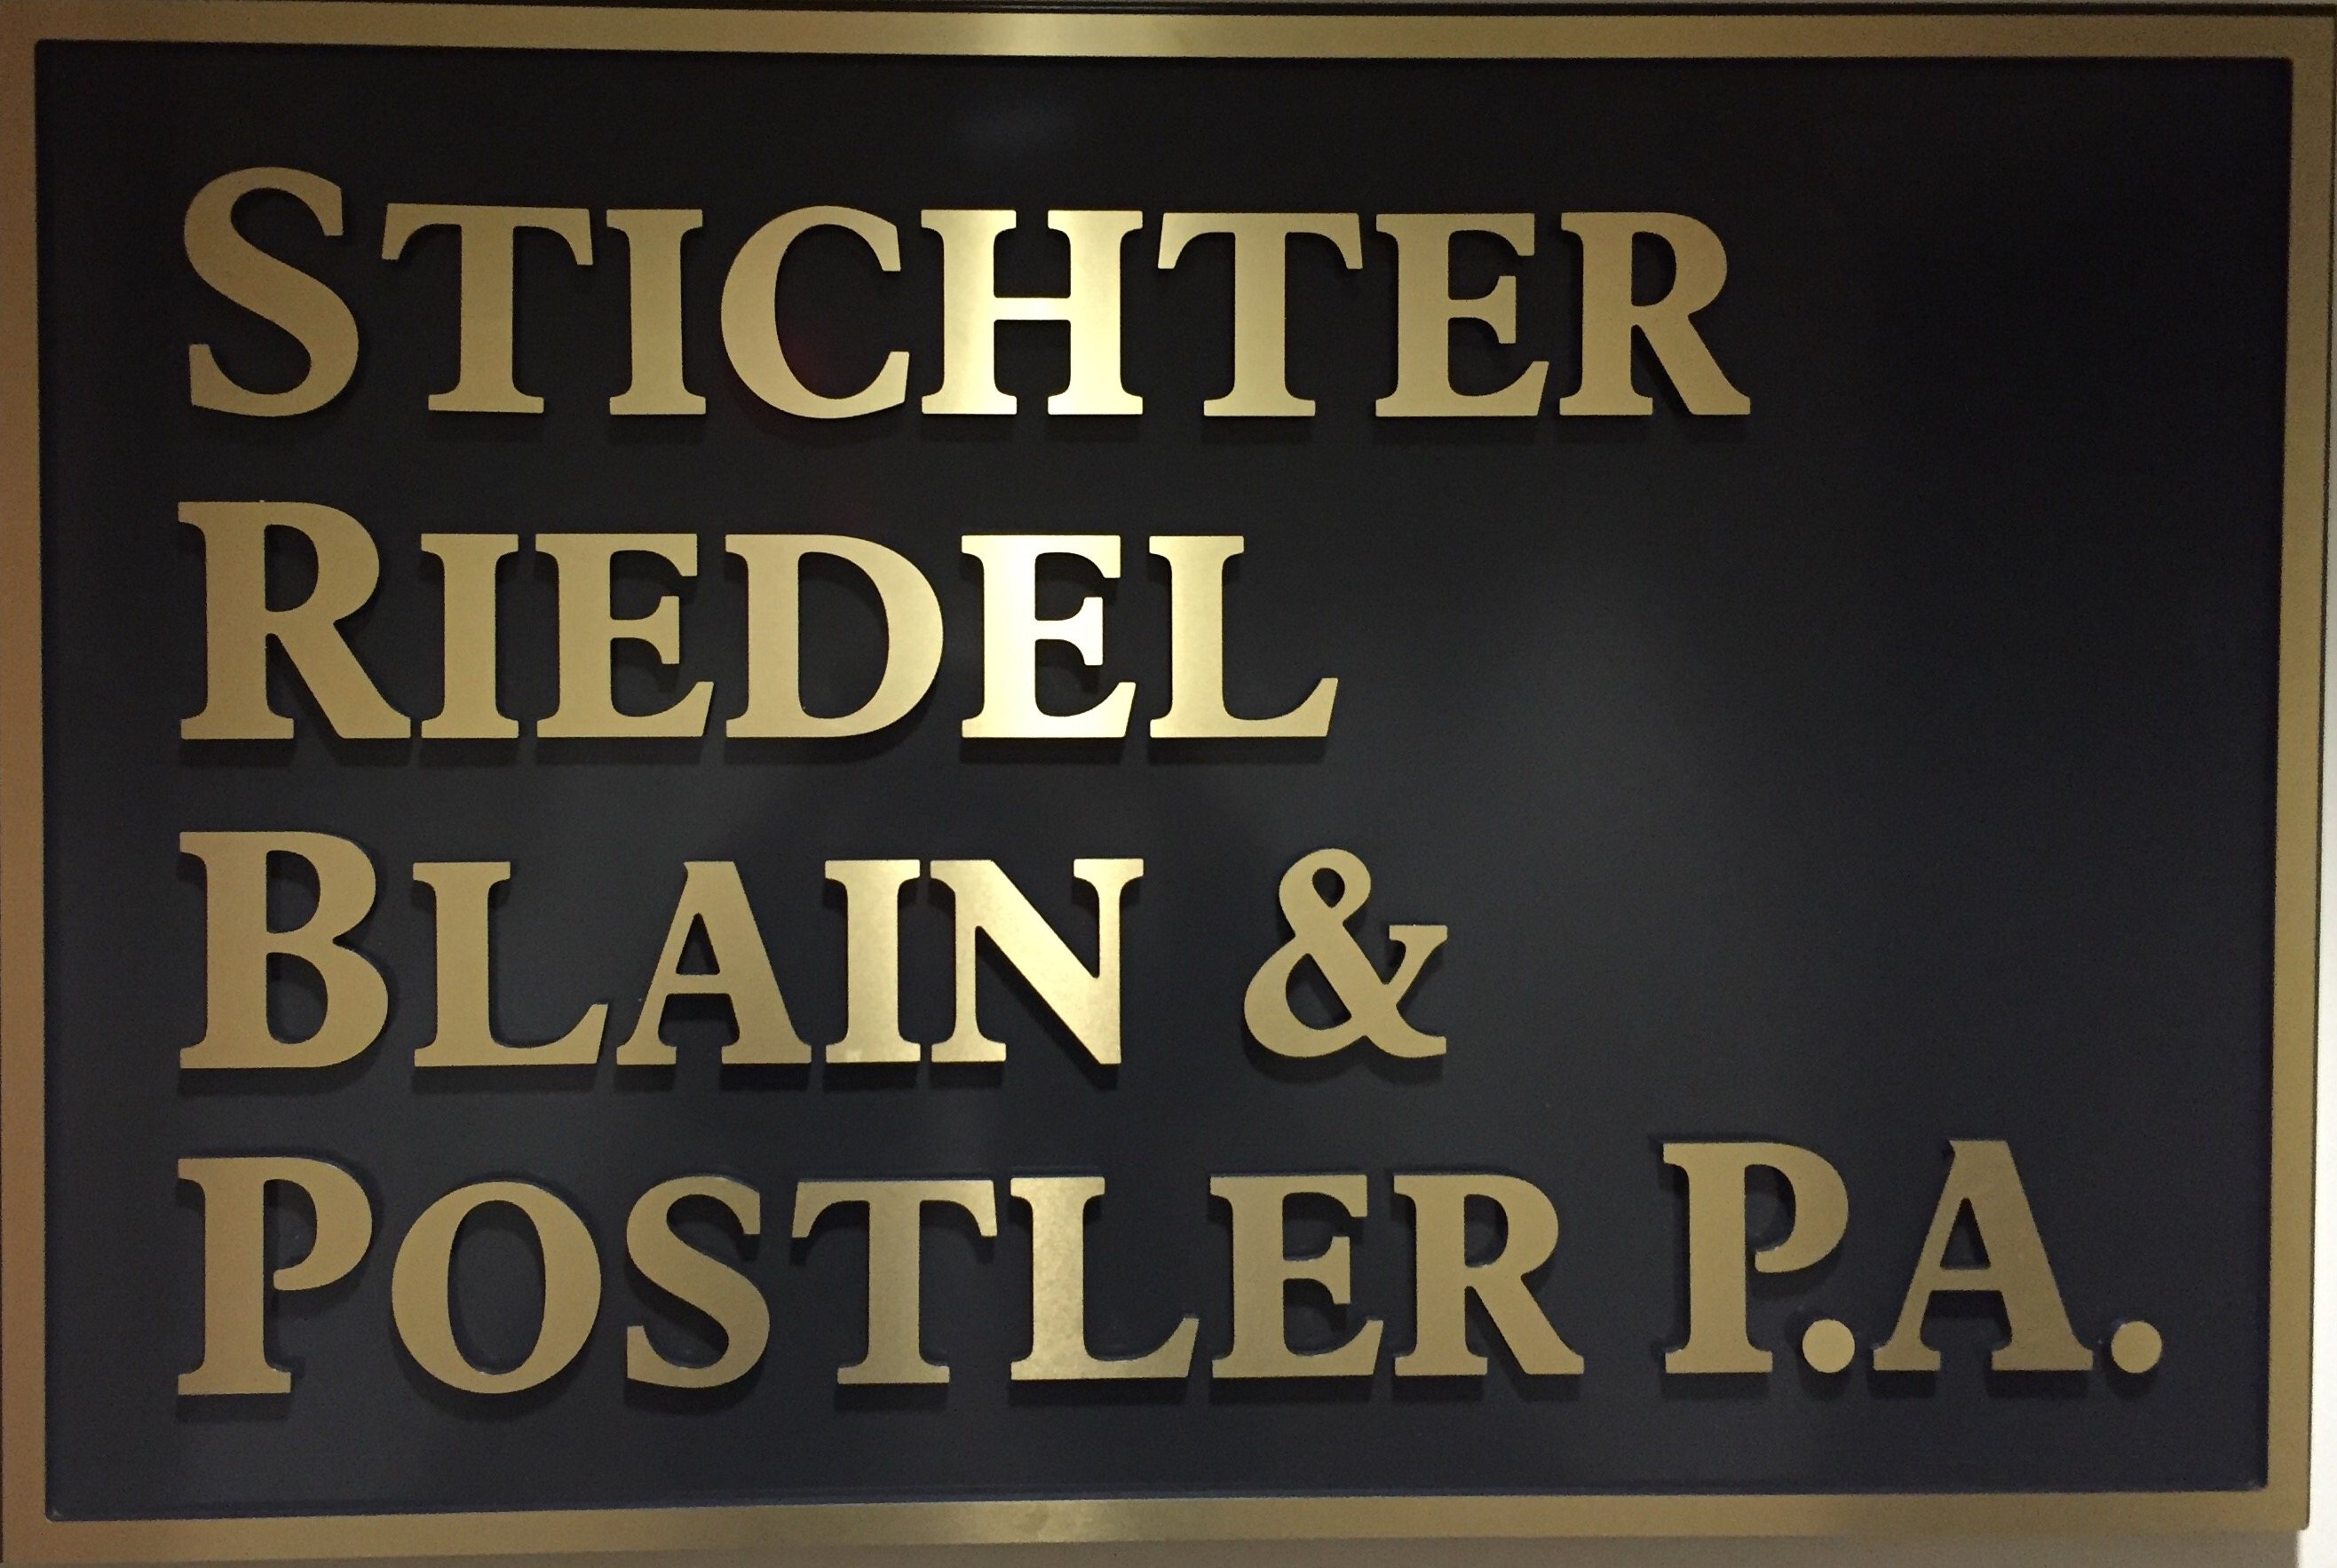 Firm Changes Name To Add Shareholder, Charles A. Postler - June 2015